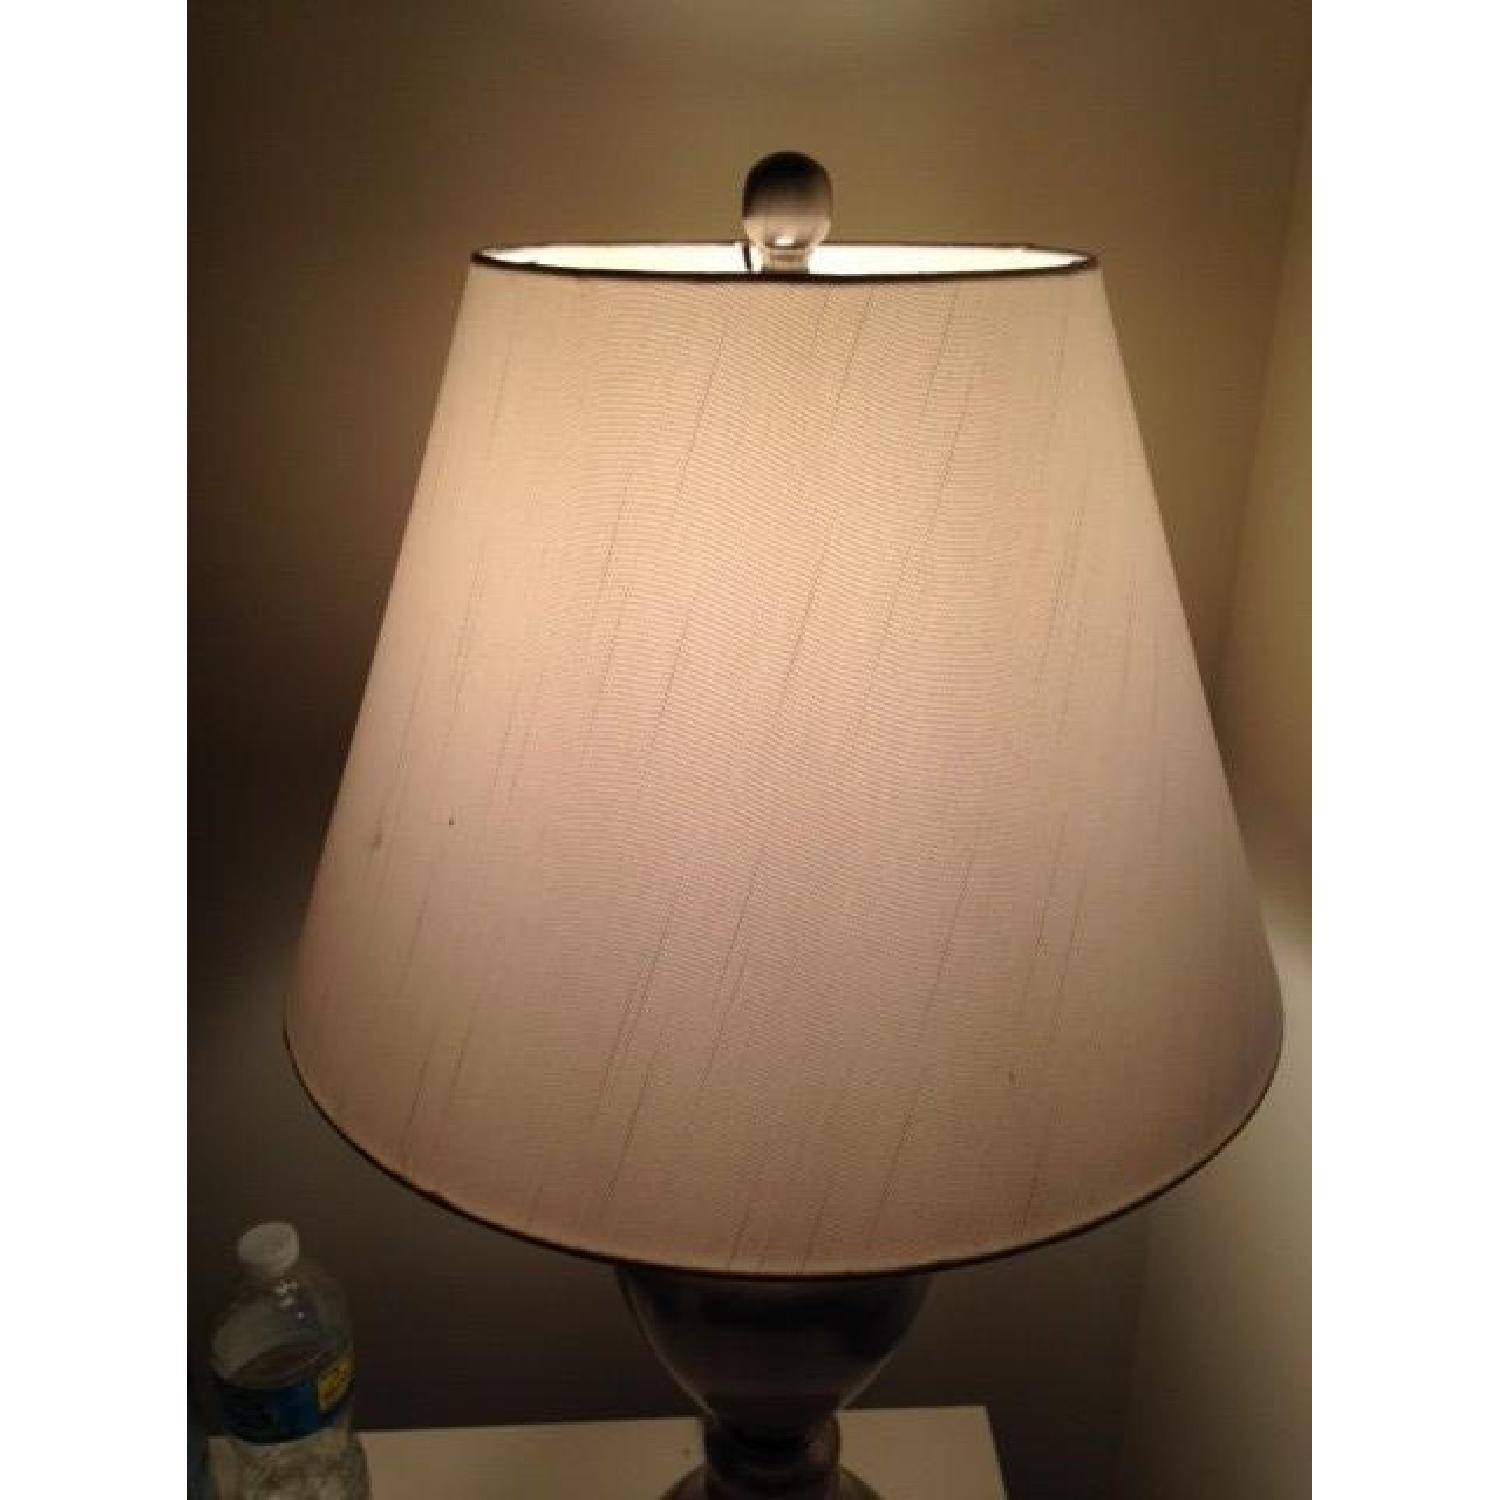 Macy's Silver Table Lamp w/ White Shade - image-3